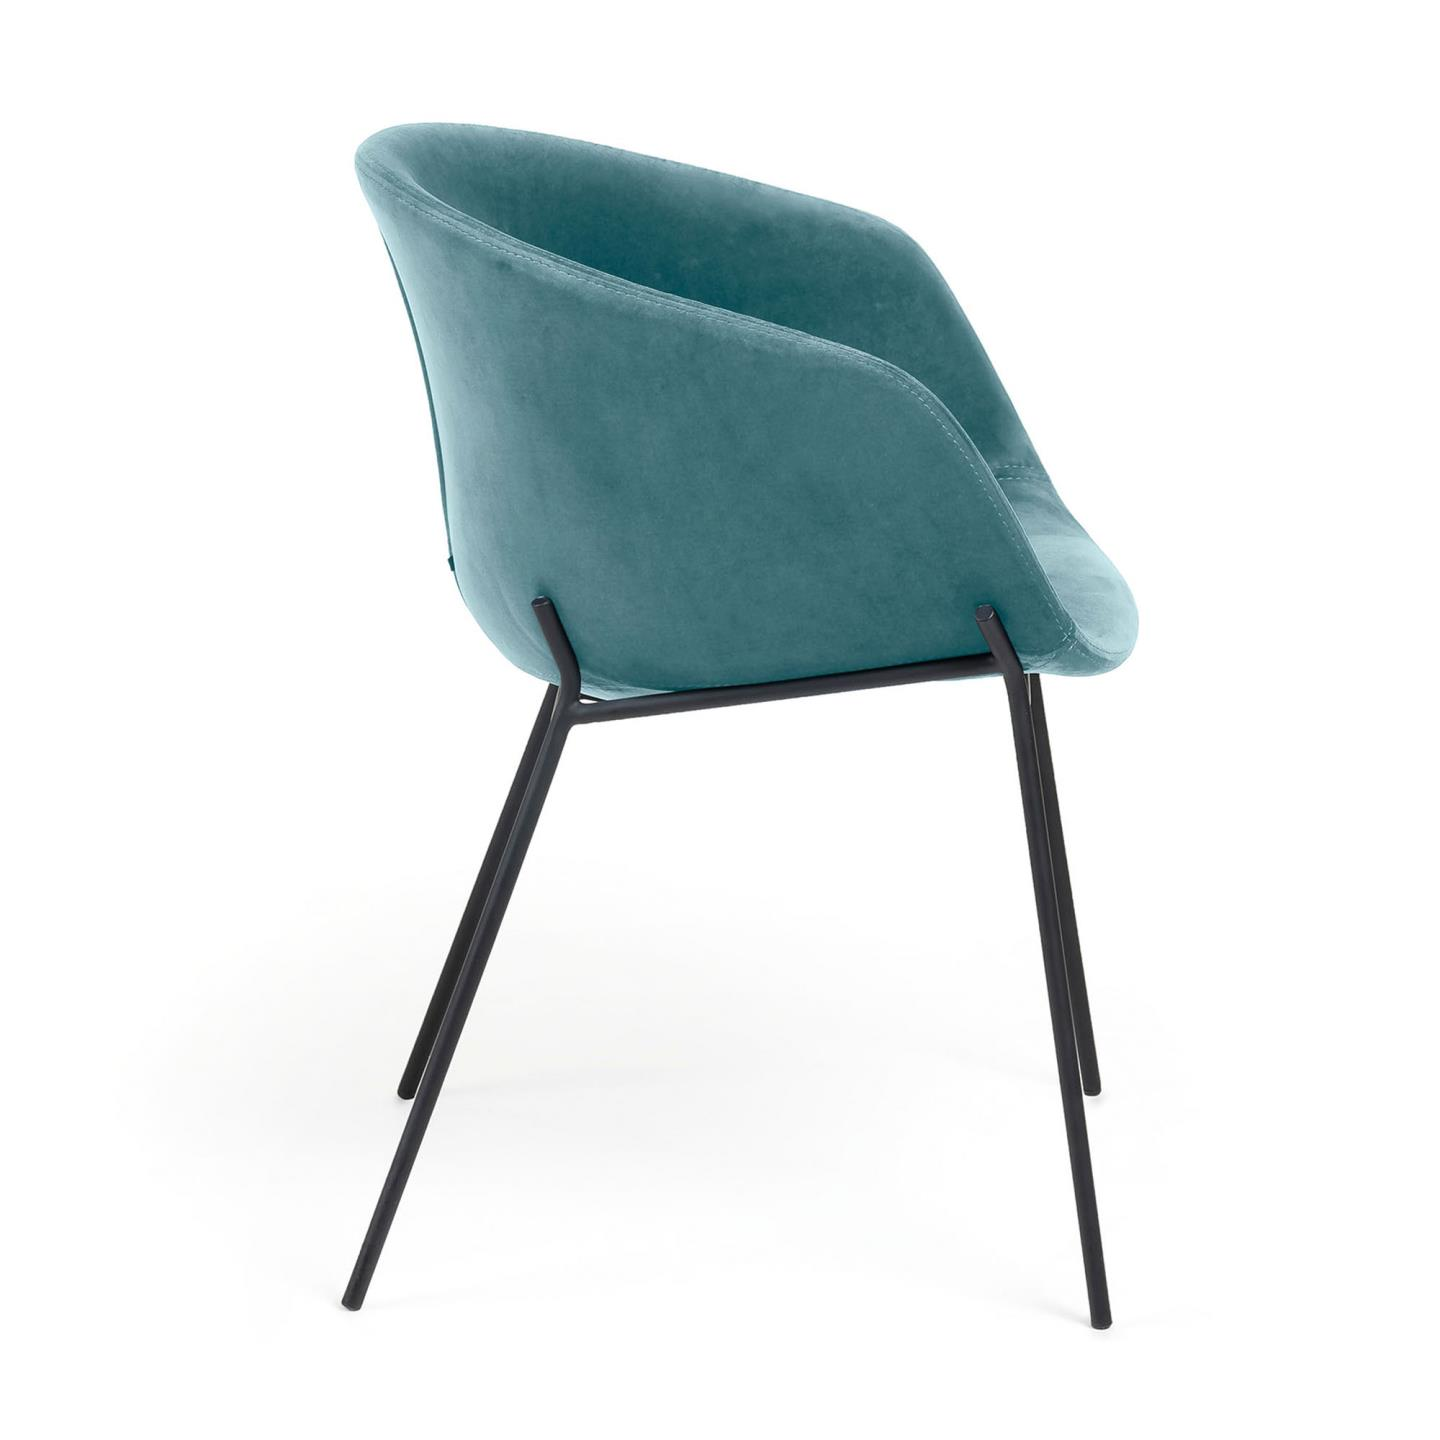 ZADINE Armchair of black metal and turquoise